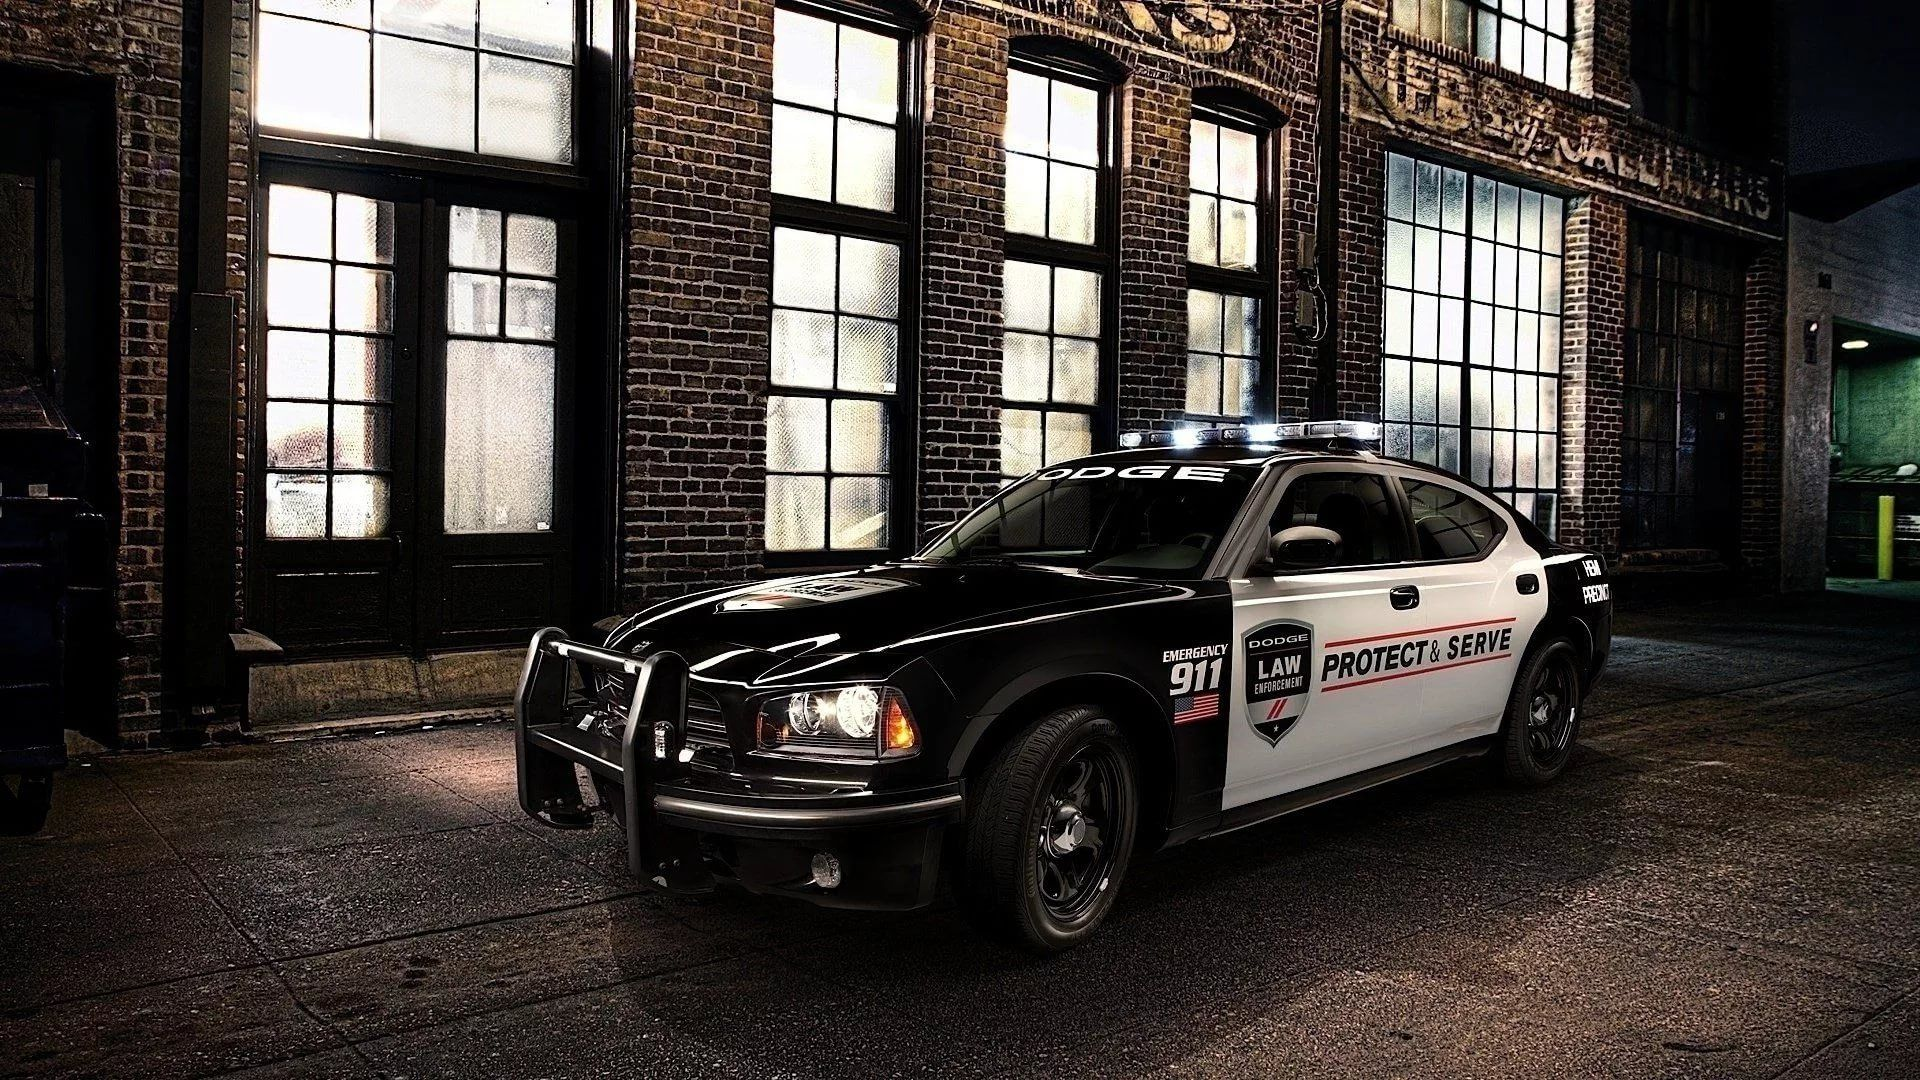 Police background wallpaper